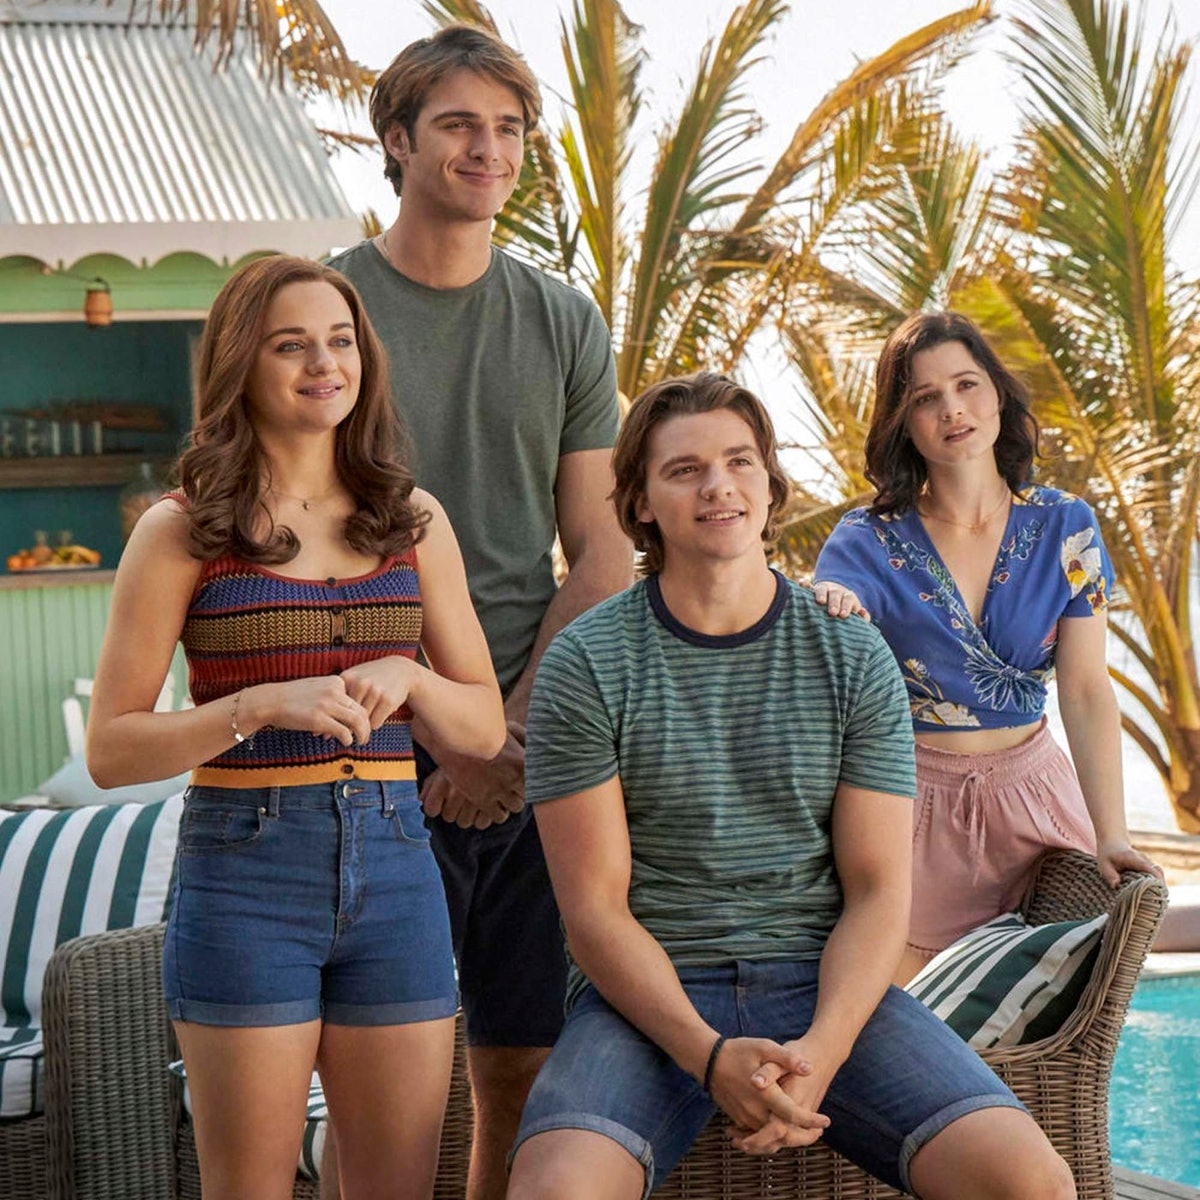 The cast of The Kissing Booth 3.